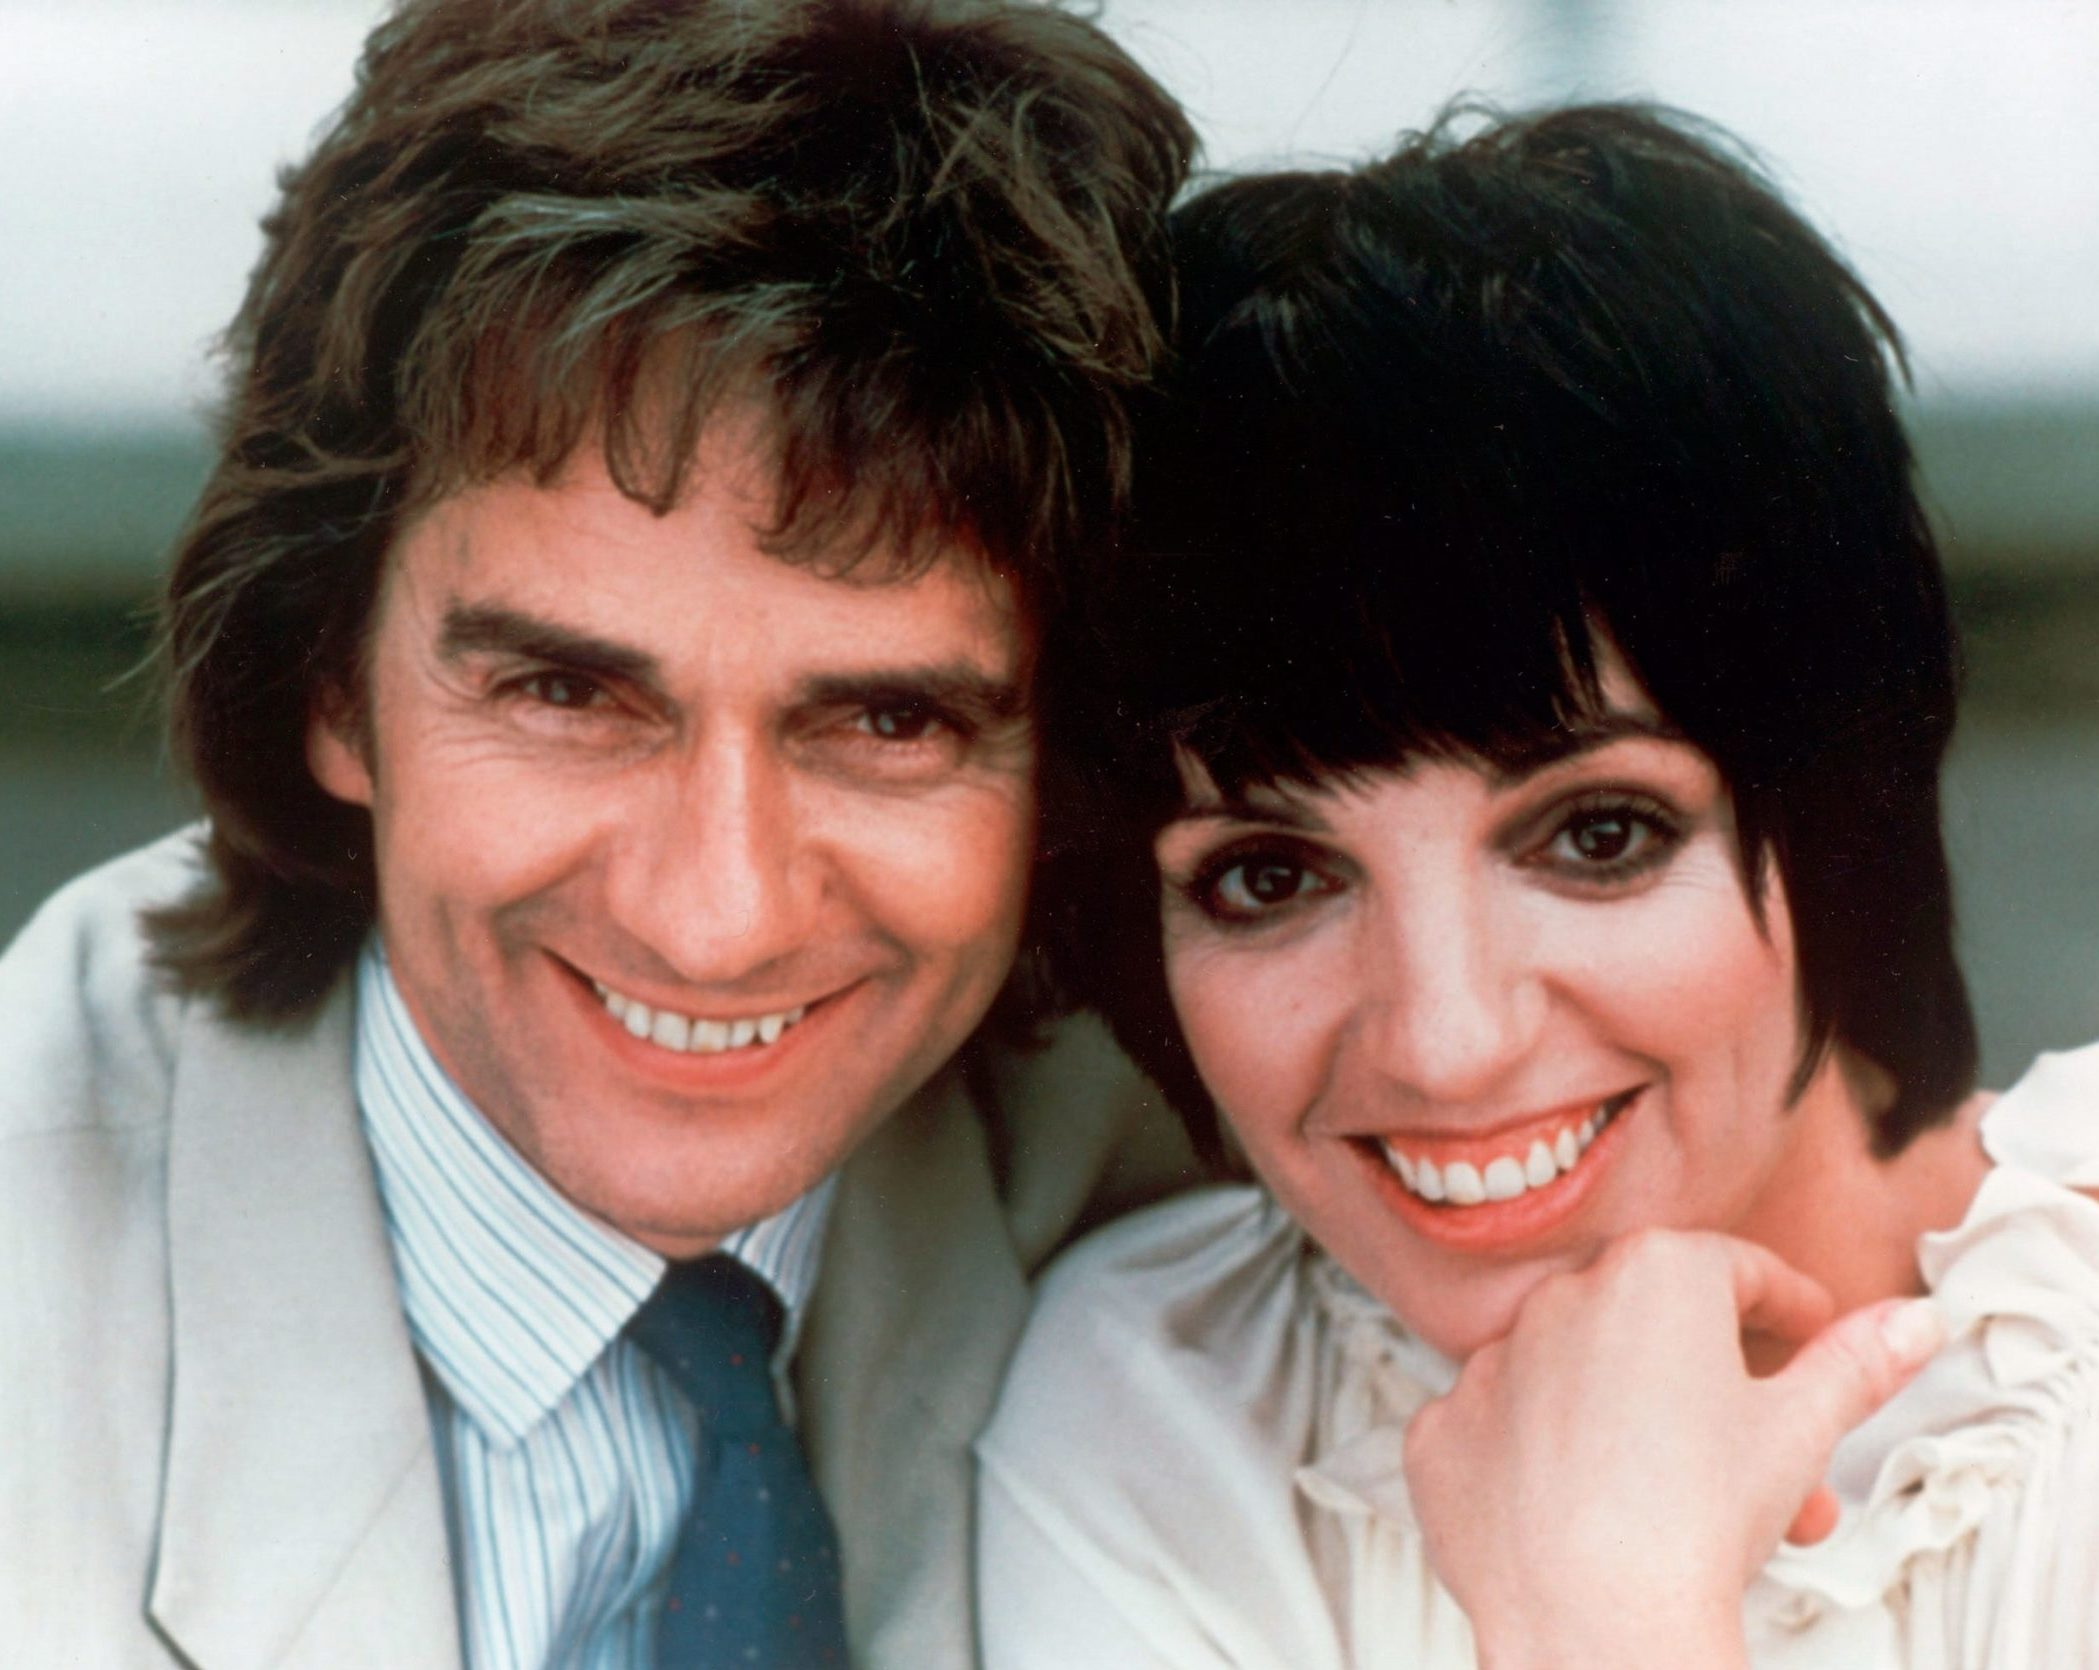 41 actrices y actores de los 80 que tal vez hayas olvidado 8 scaled e1610106840893 20 Things You Never Knew About Dudley Moore